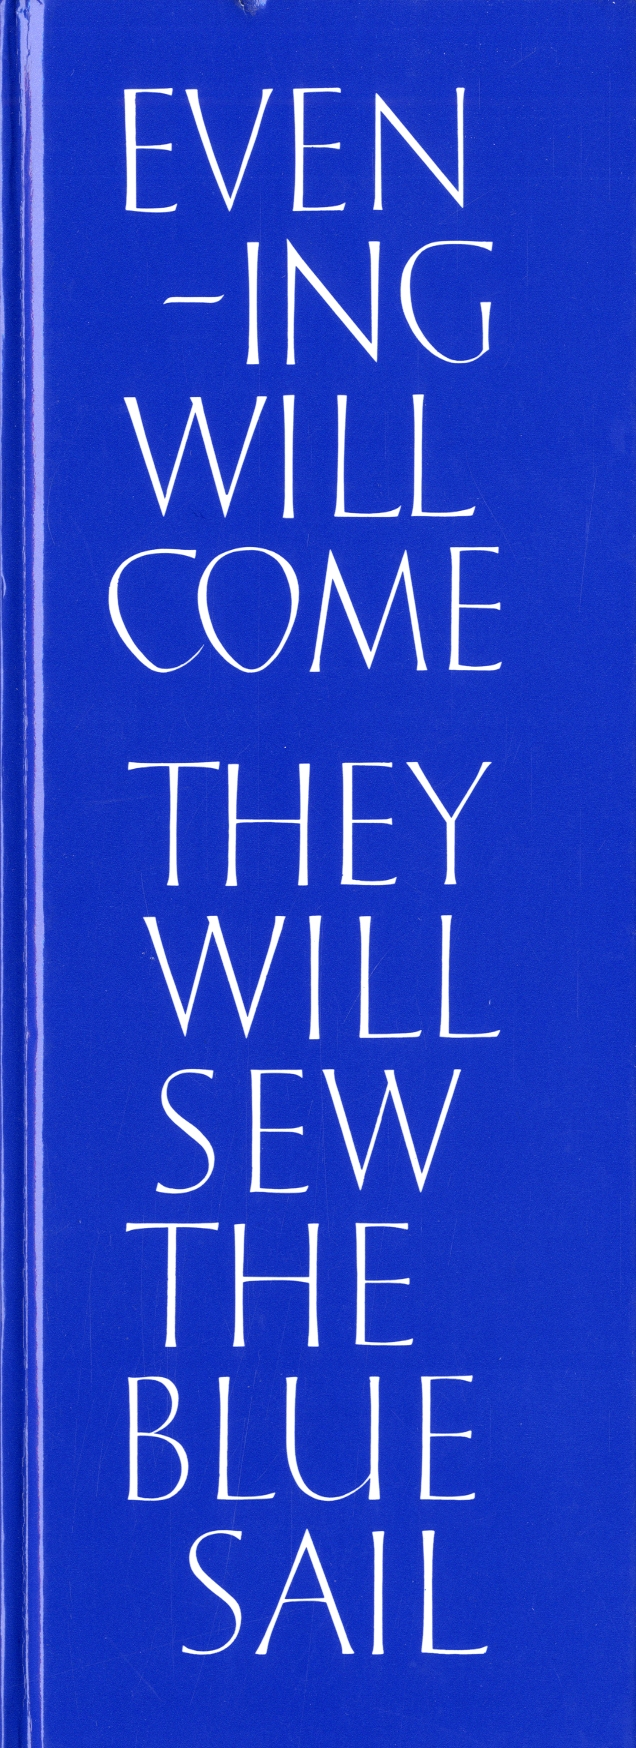 Evening Will Come : They Will Sew the Blue Sail